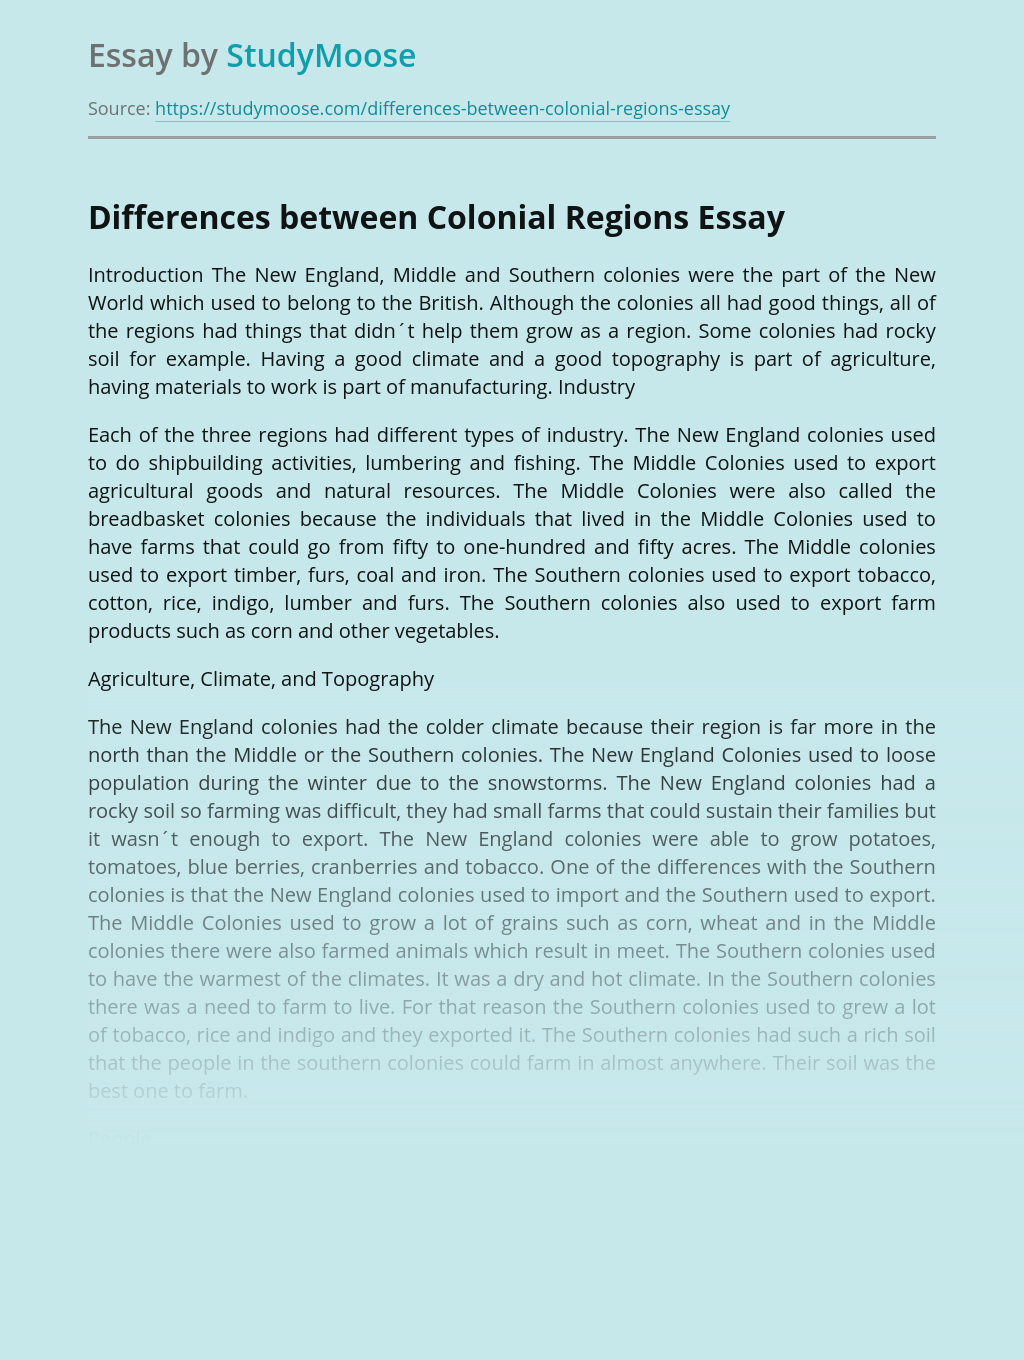 Differences between Colonial Regions